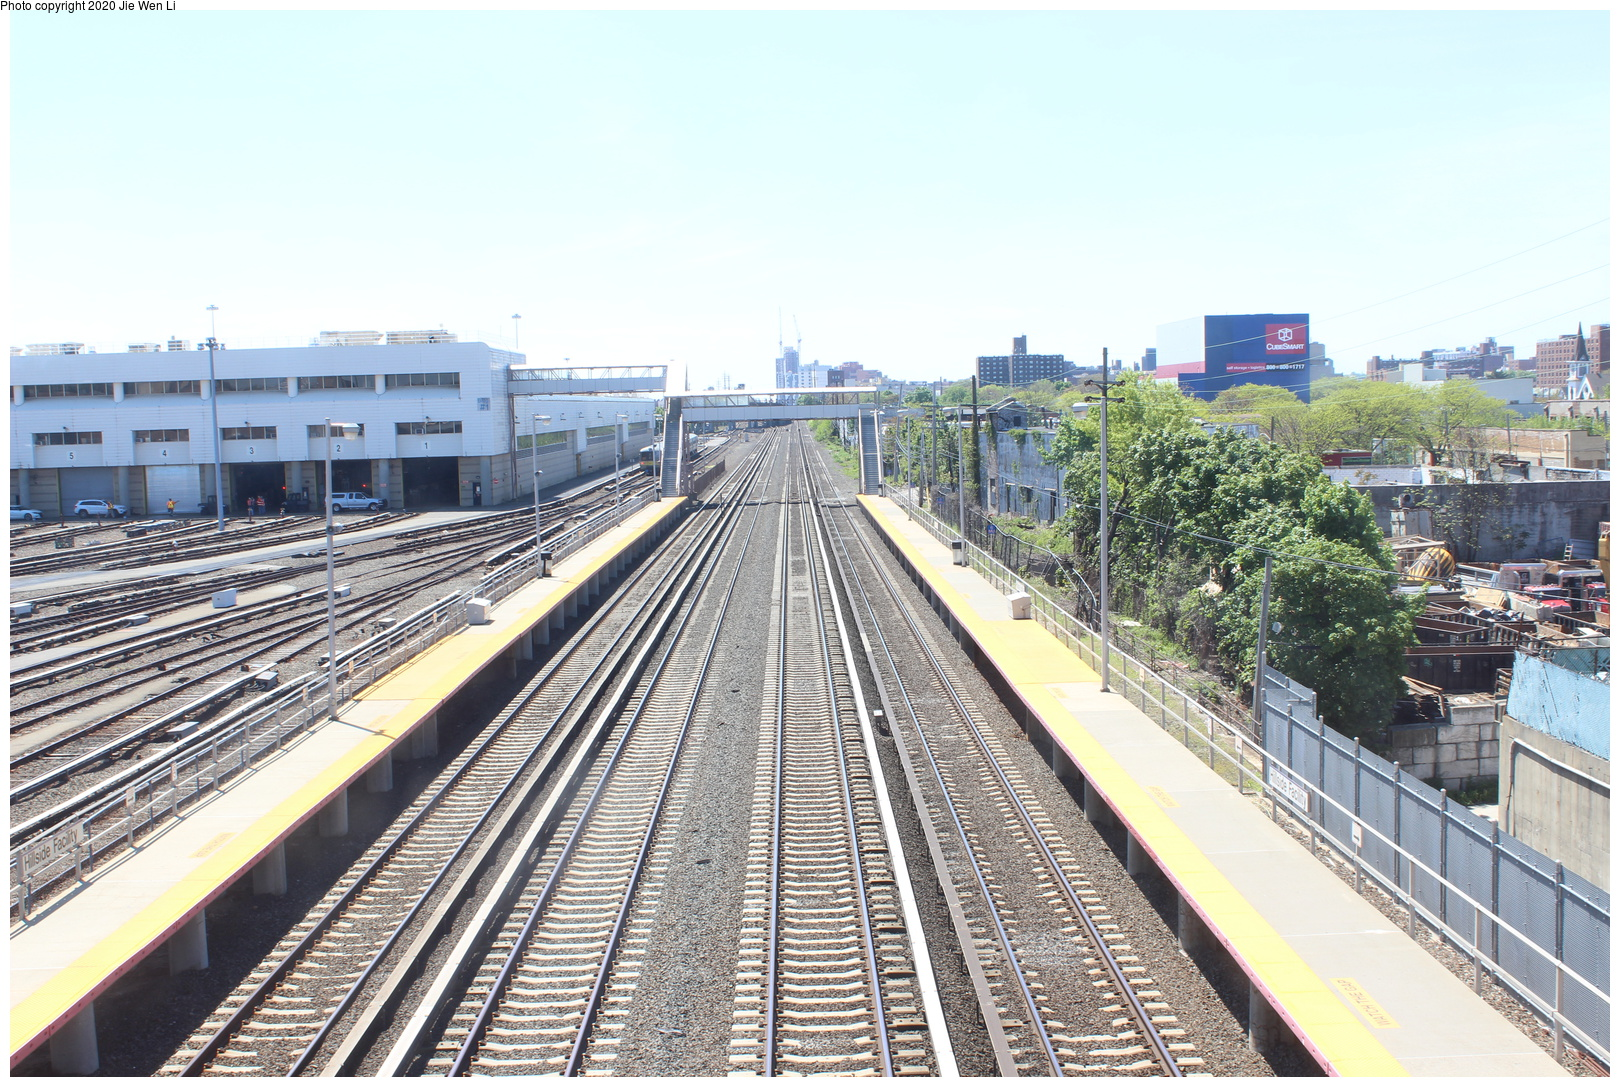 (213k, 1026x1044)<br><b>Country:</b> United States<br><b>City:</b> New York<br><b>System:</b> New York City Transit<br><b>Location:</b> East 180th Street Yard<br><b>Car:</b> Low-V 4932/5324 <br><b>Photo by:</b> Joel Shanus<br><b>Viewed (this week/total):</b> 0 / 964